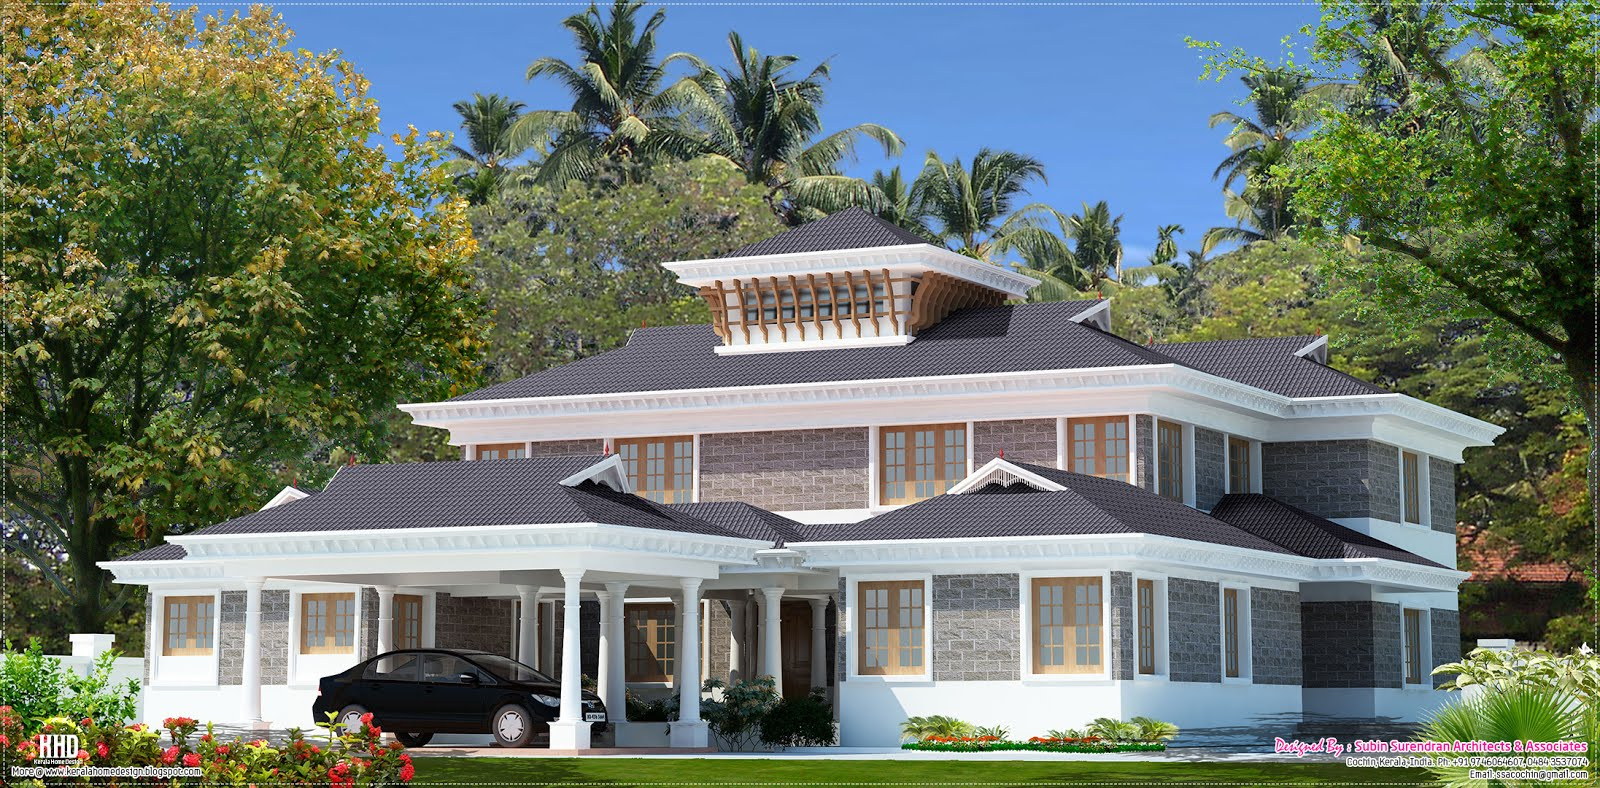 5000 sq feet luxury villa design Kerala home design and floor plans